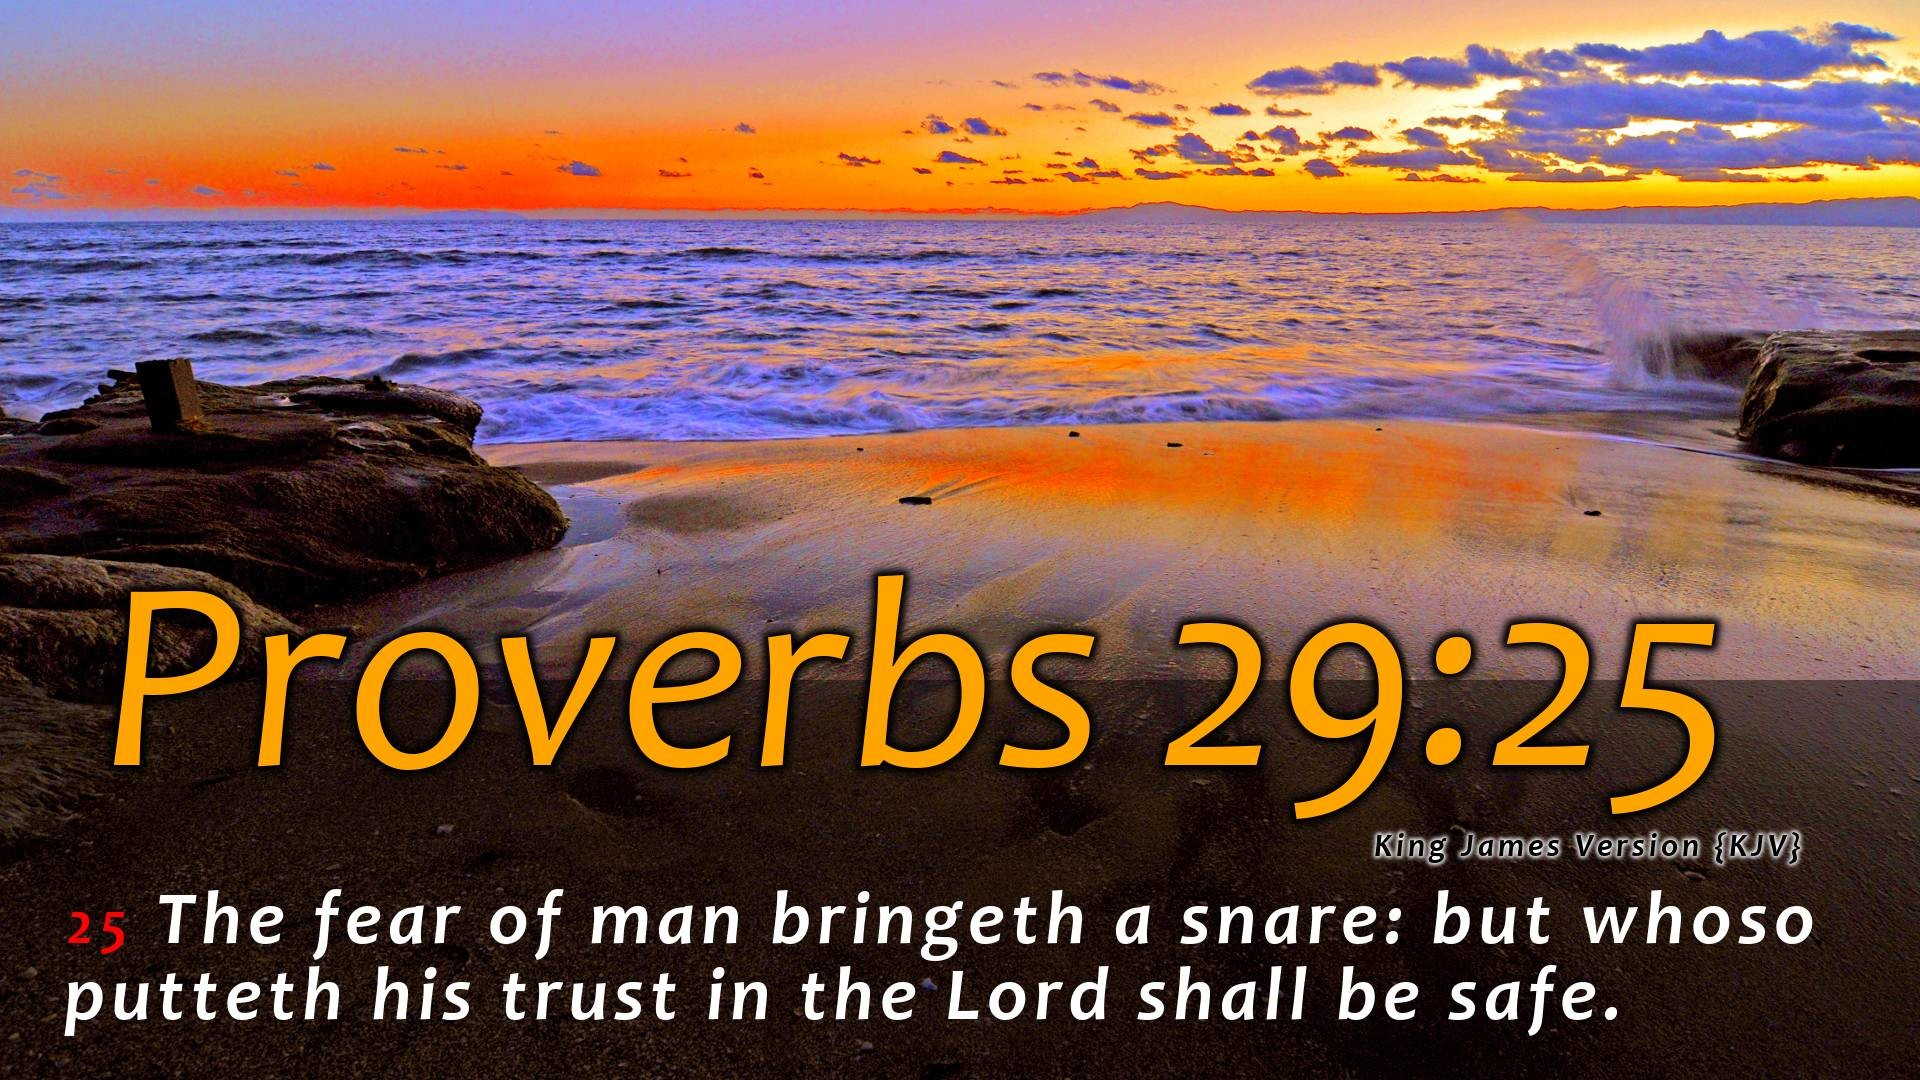 1920x1080 Proverbs 29:25 Wallpaper #